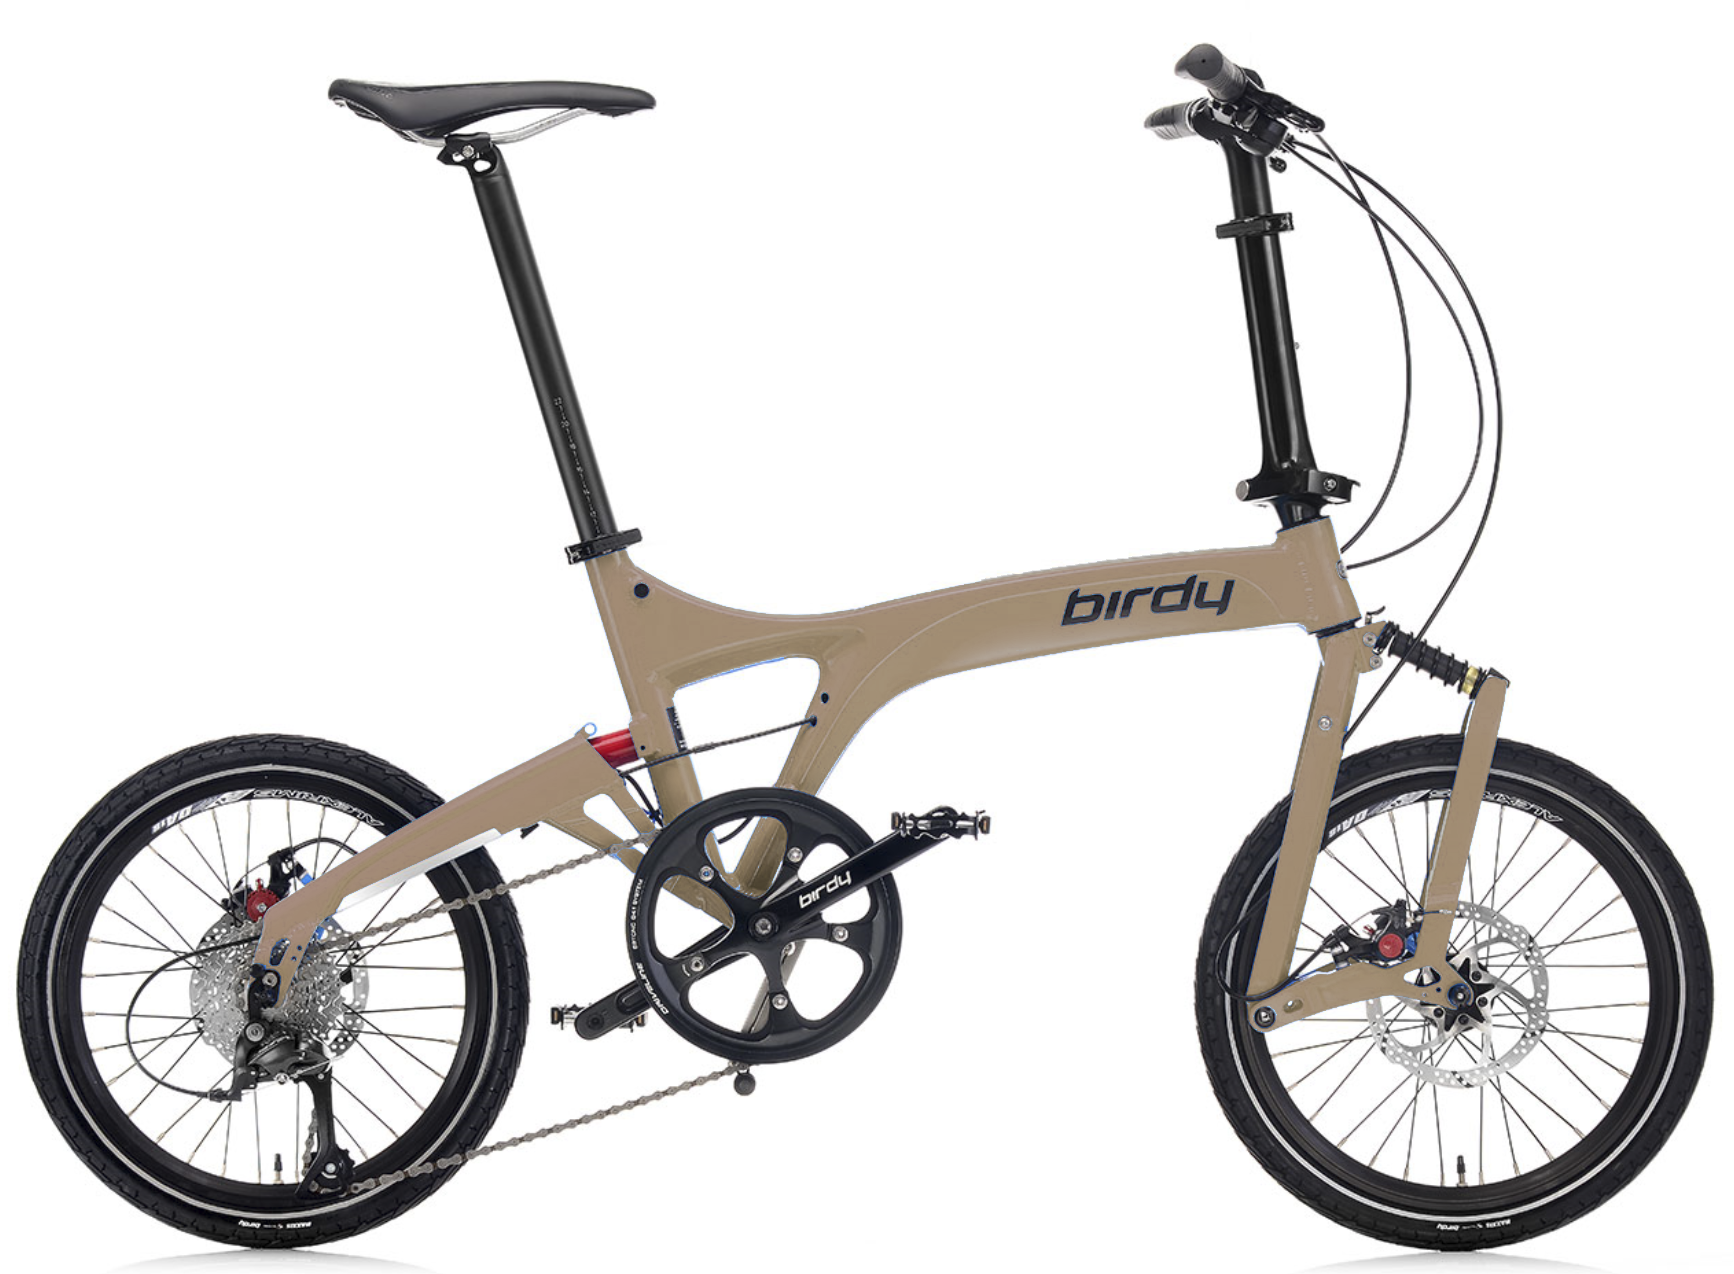 Used Birdy Folding Bike For Sale